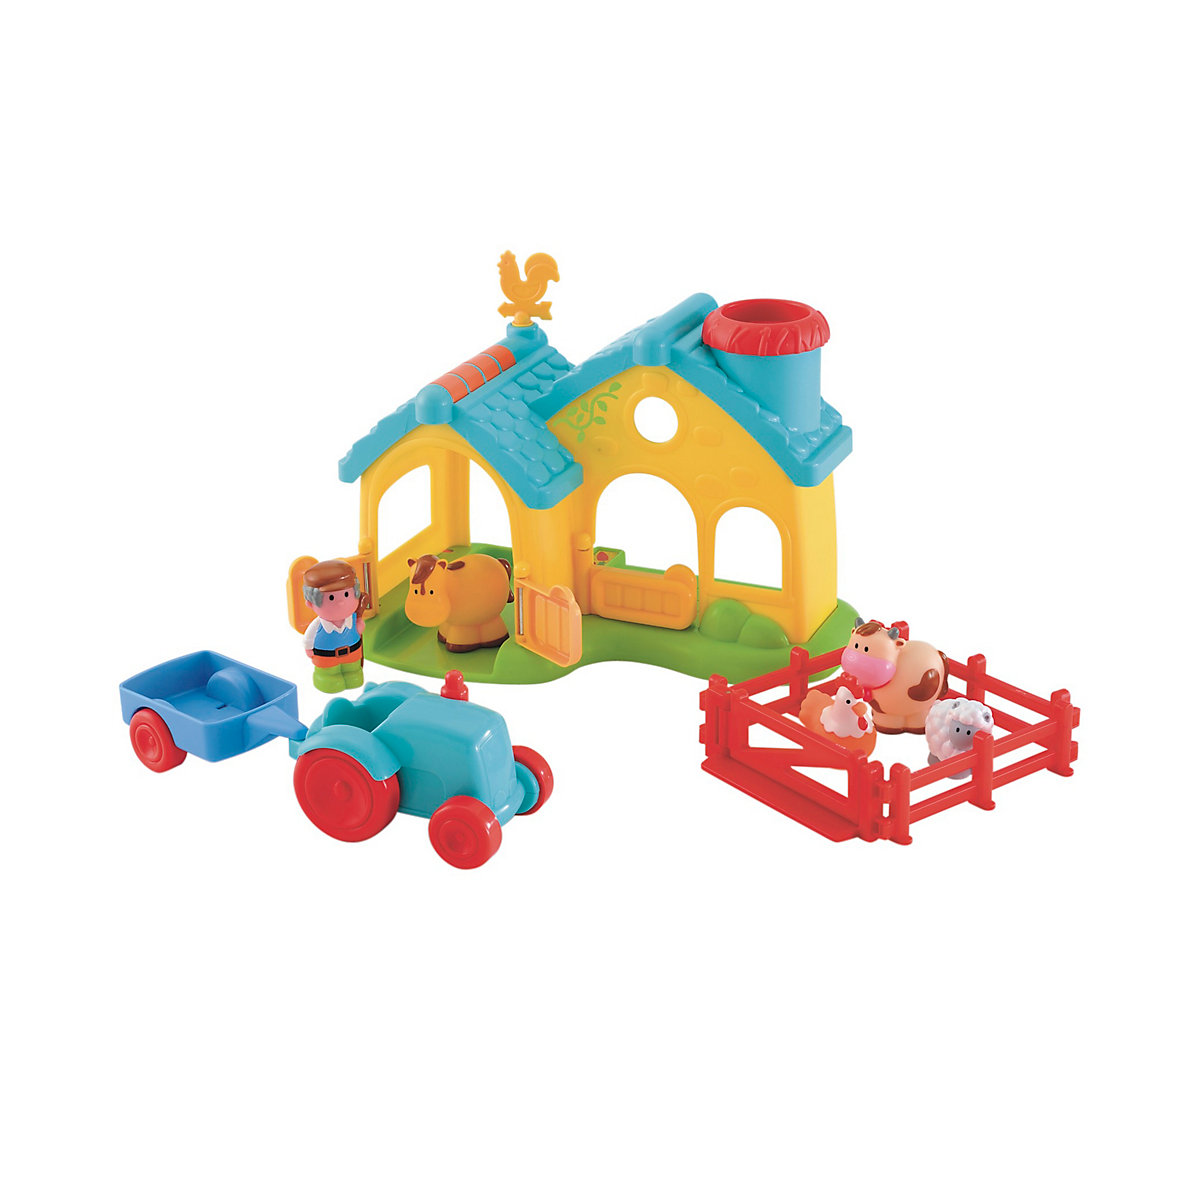 Toys For Boys 18 Months : New happyland boys and girls farm playset toy from